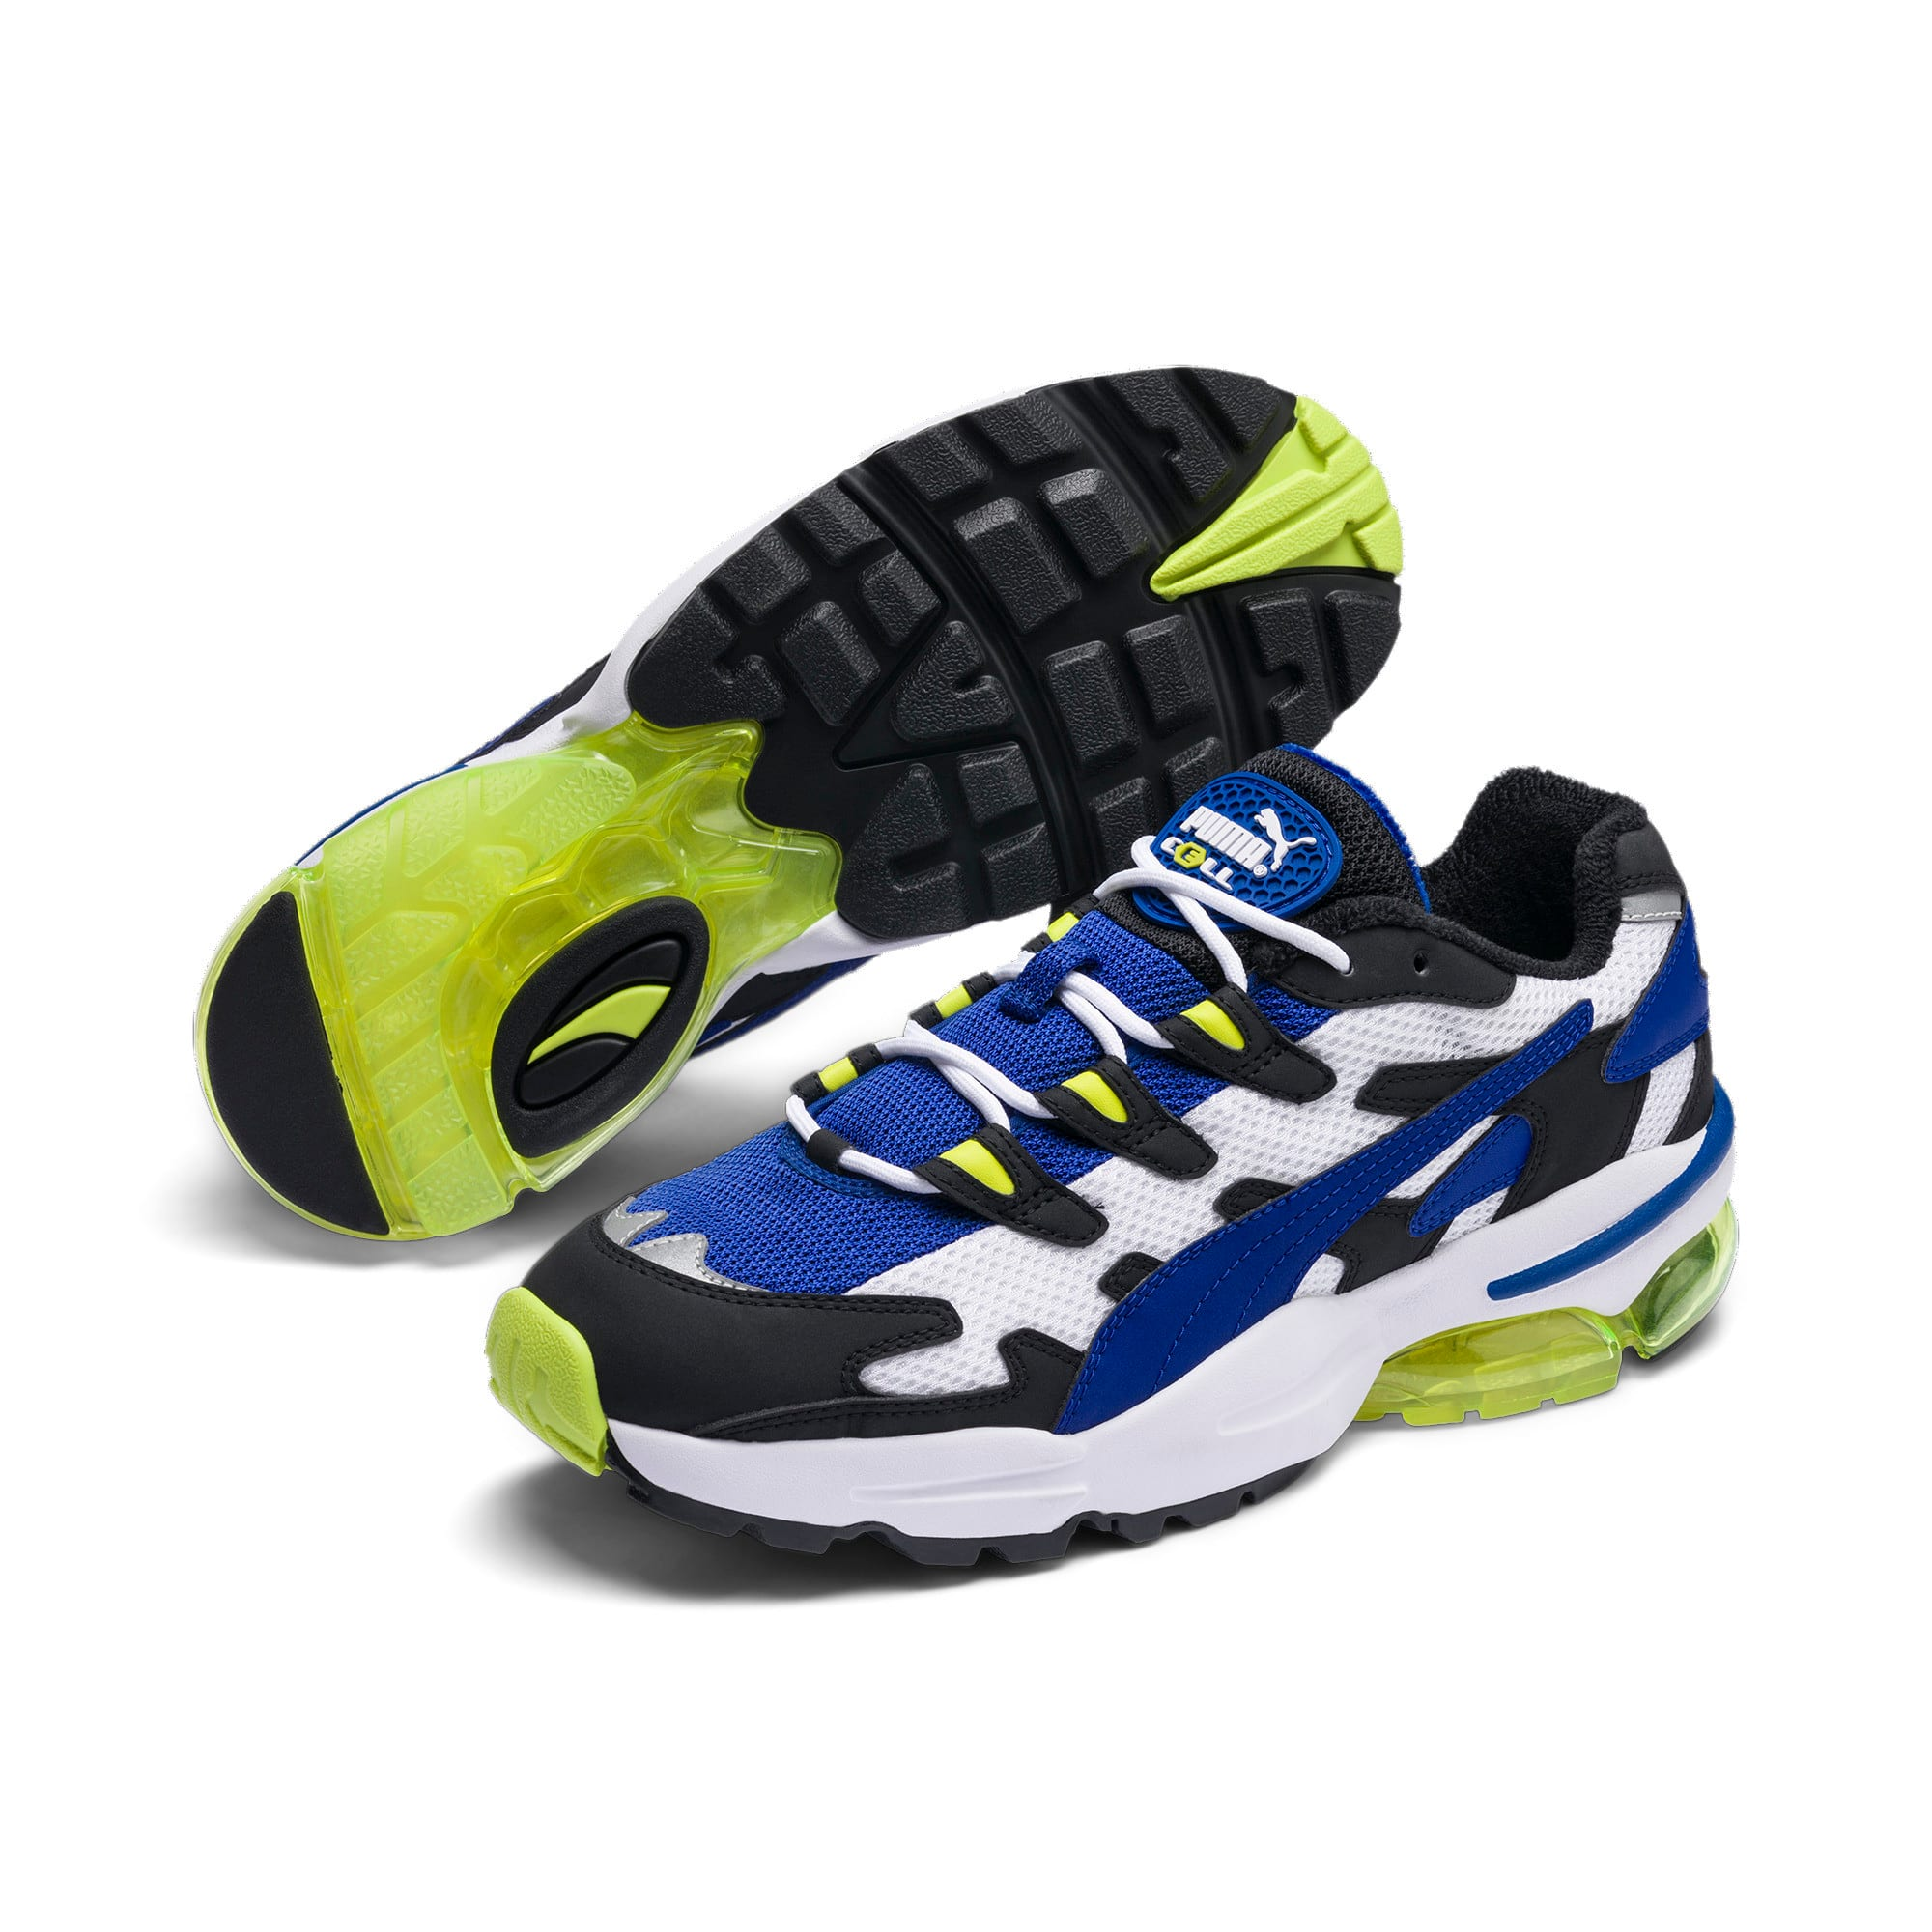 Thumbnail 4 of CELL Alien OG Trainers, Puma Black-Surf The Web, medium-IND